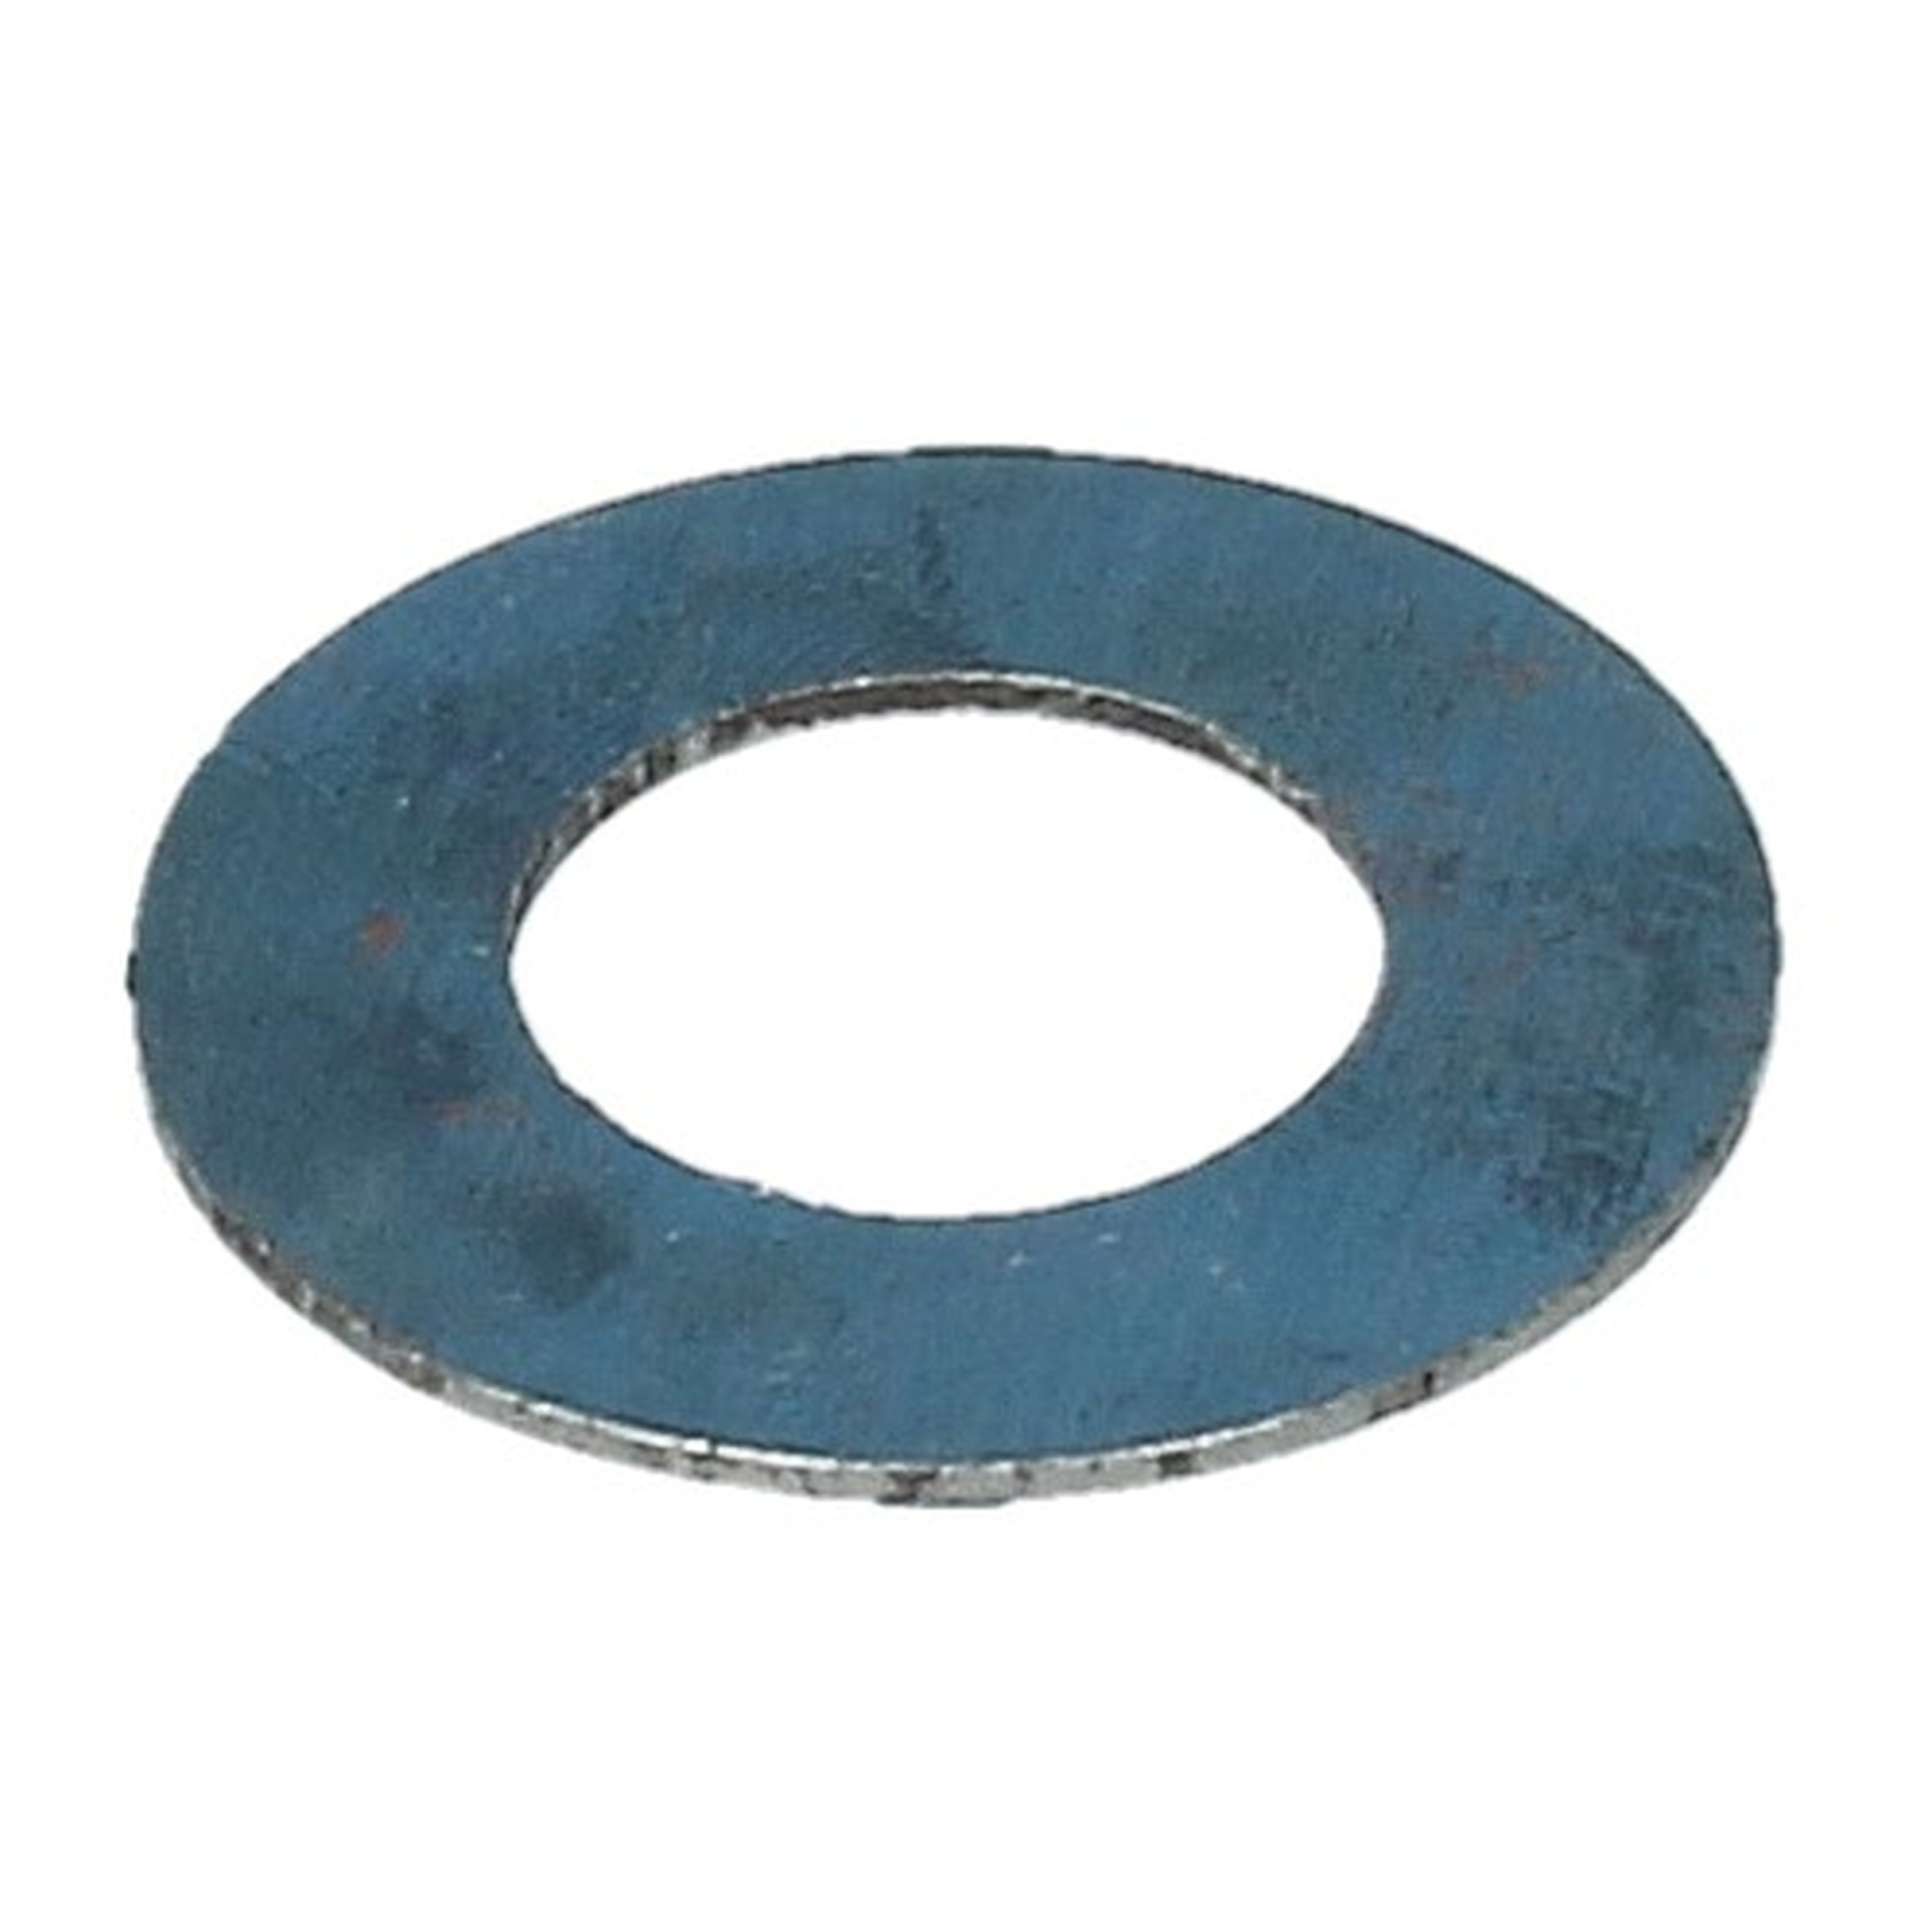 Ferrari Steering Idler Washer (76217)